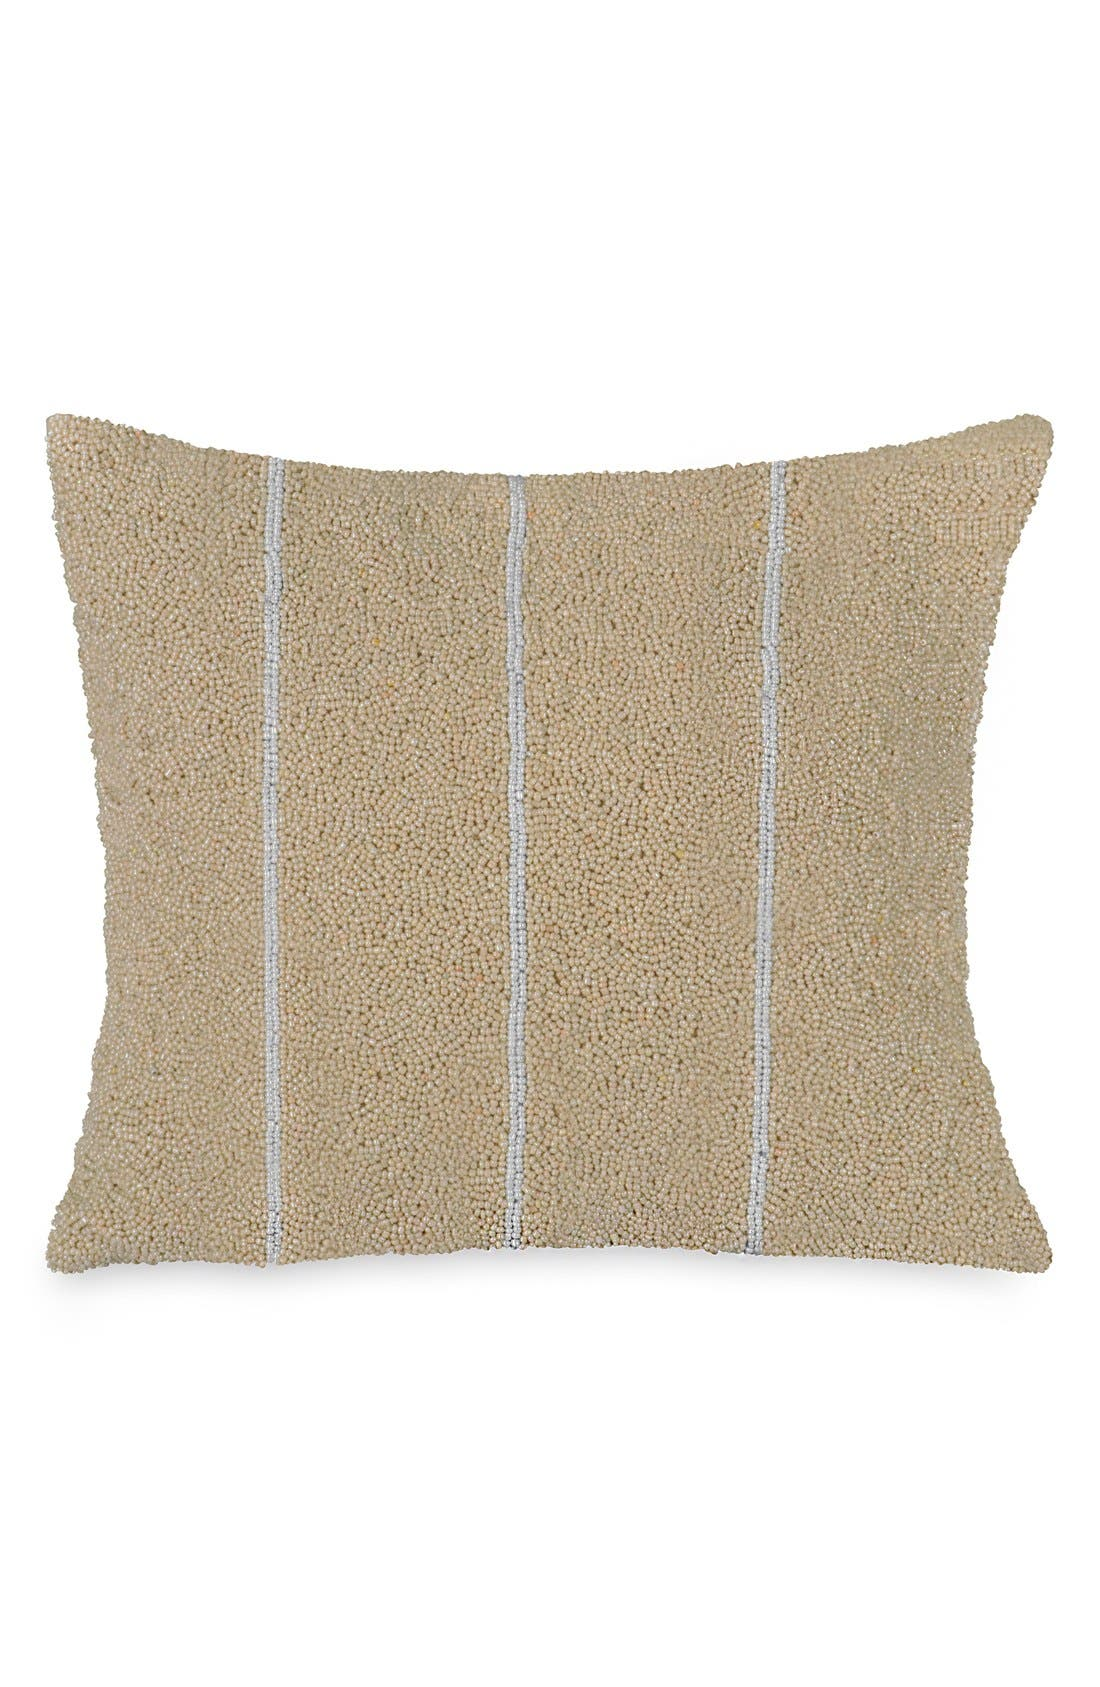 Donna Karan Collection 'Moonscape' Beaded Accent Pillow